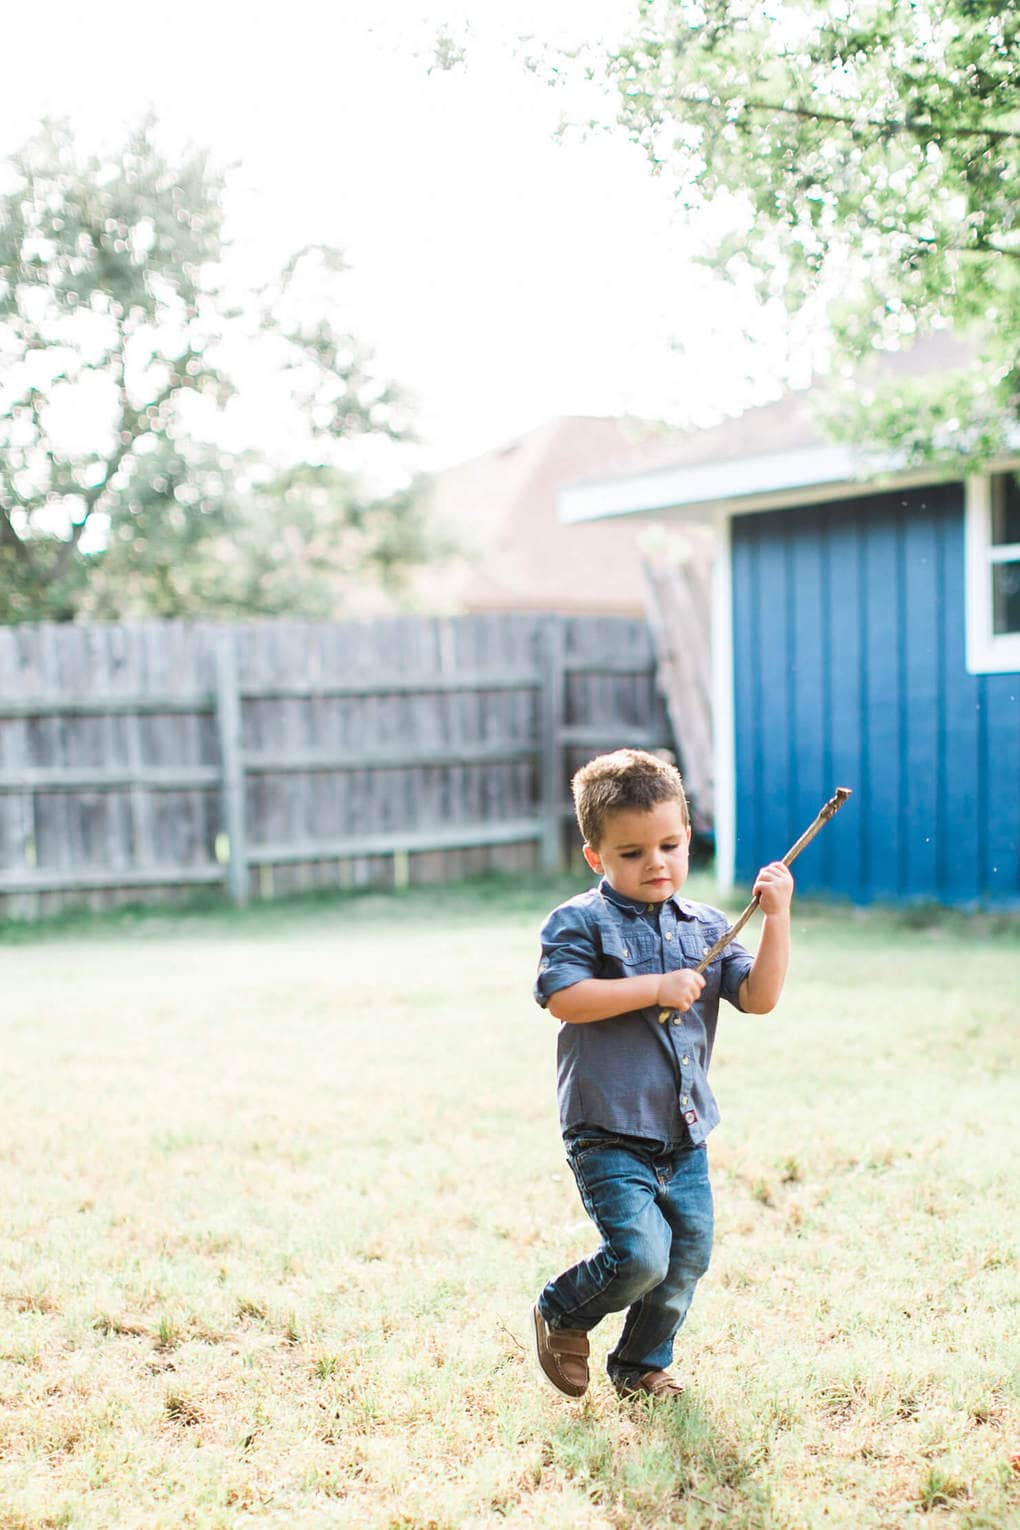 Tips for taking great family photos with kids